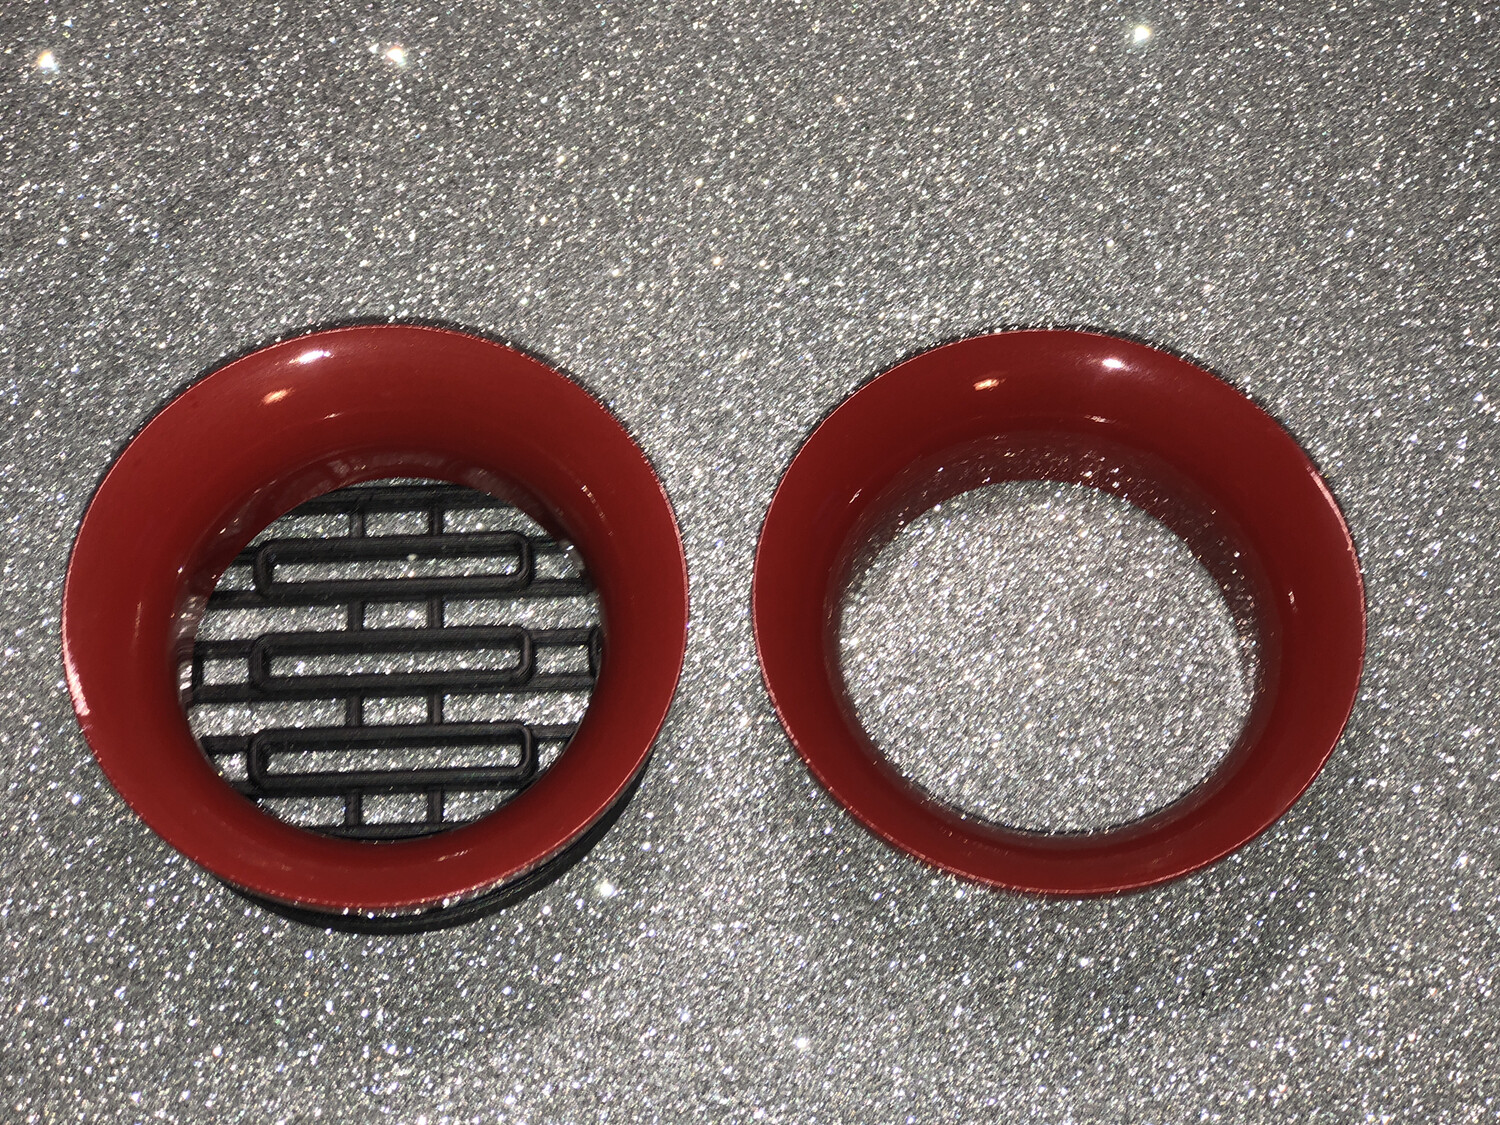 DIABLO Combo Painted Headlight Rings - 1 with Screen, 1 No Screen